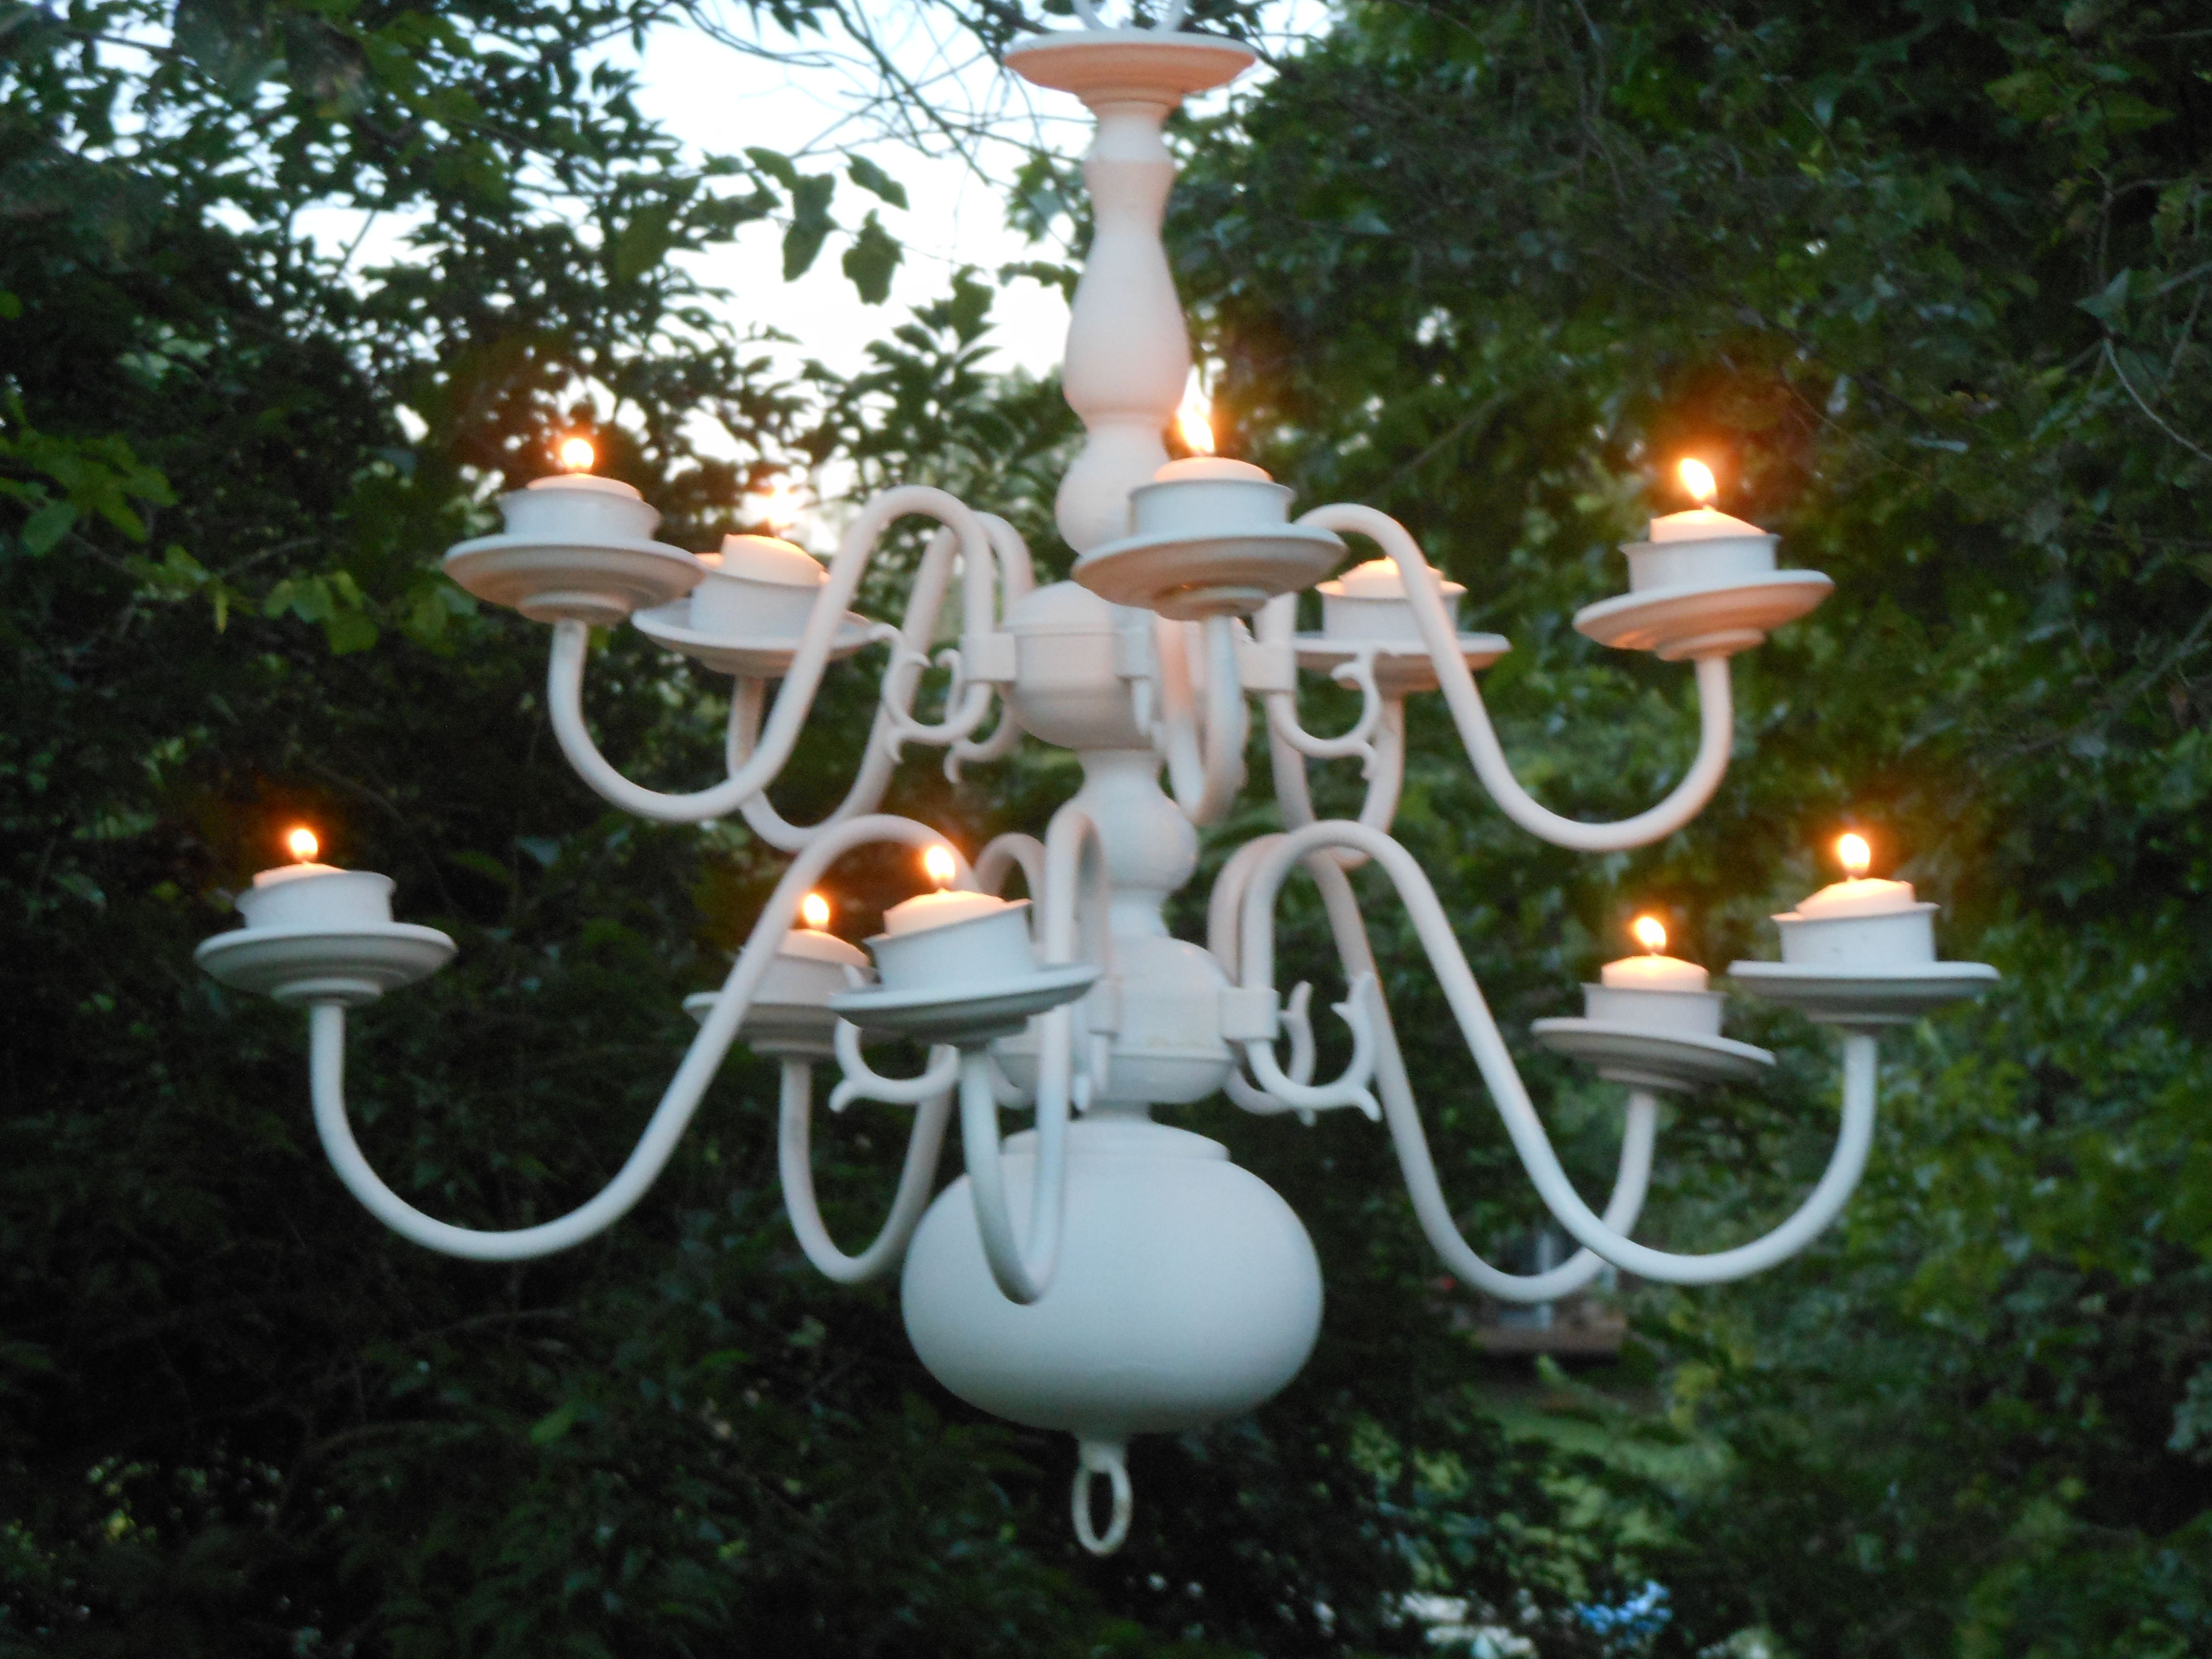 Repurposed Chandelier Recycled Projects Chandelier Outdoor Projects